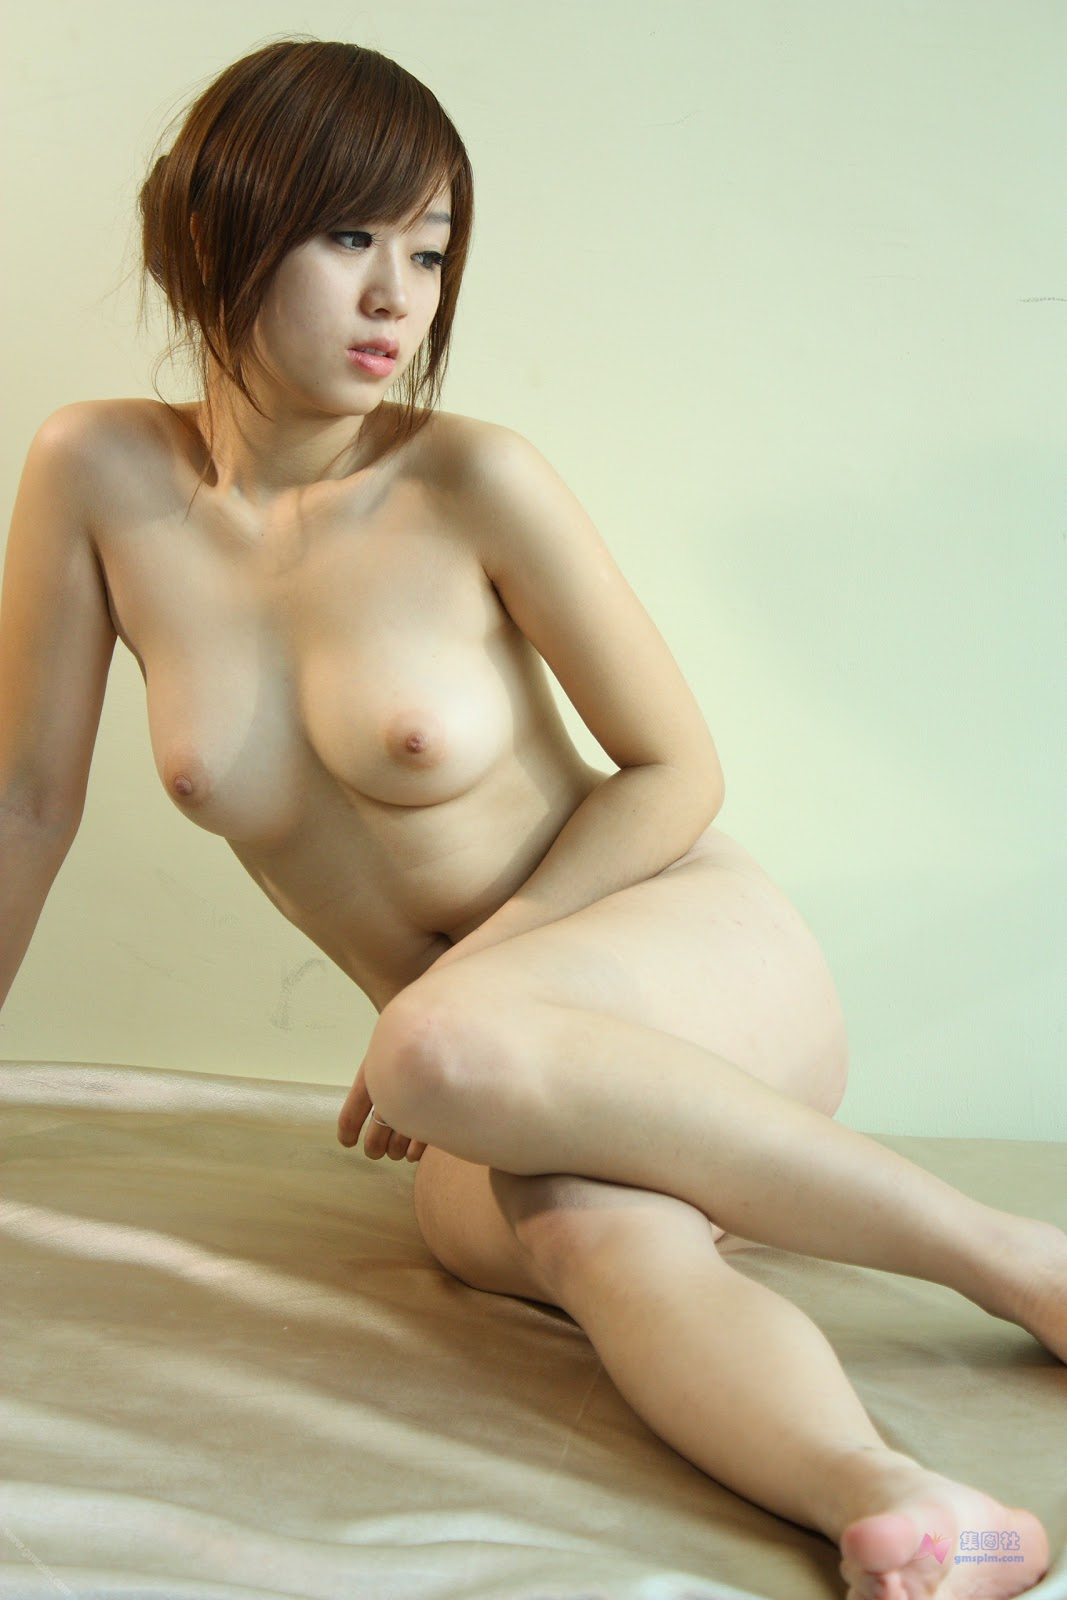 Beeg hottest nud girls ever